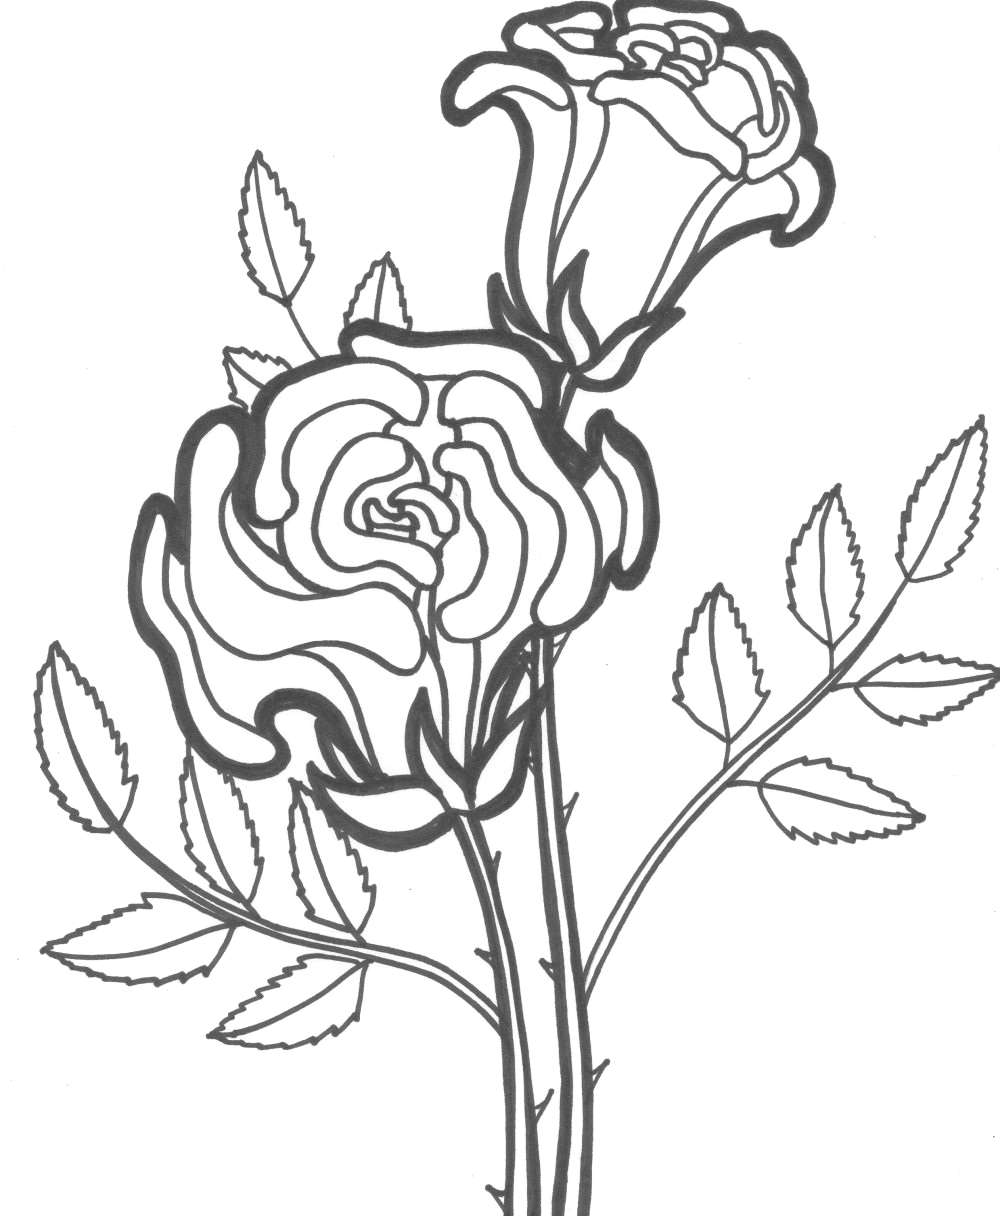 rose coloring page rose flower coloring pages getcoloringpagescom coloring rose page